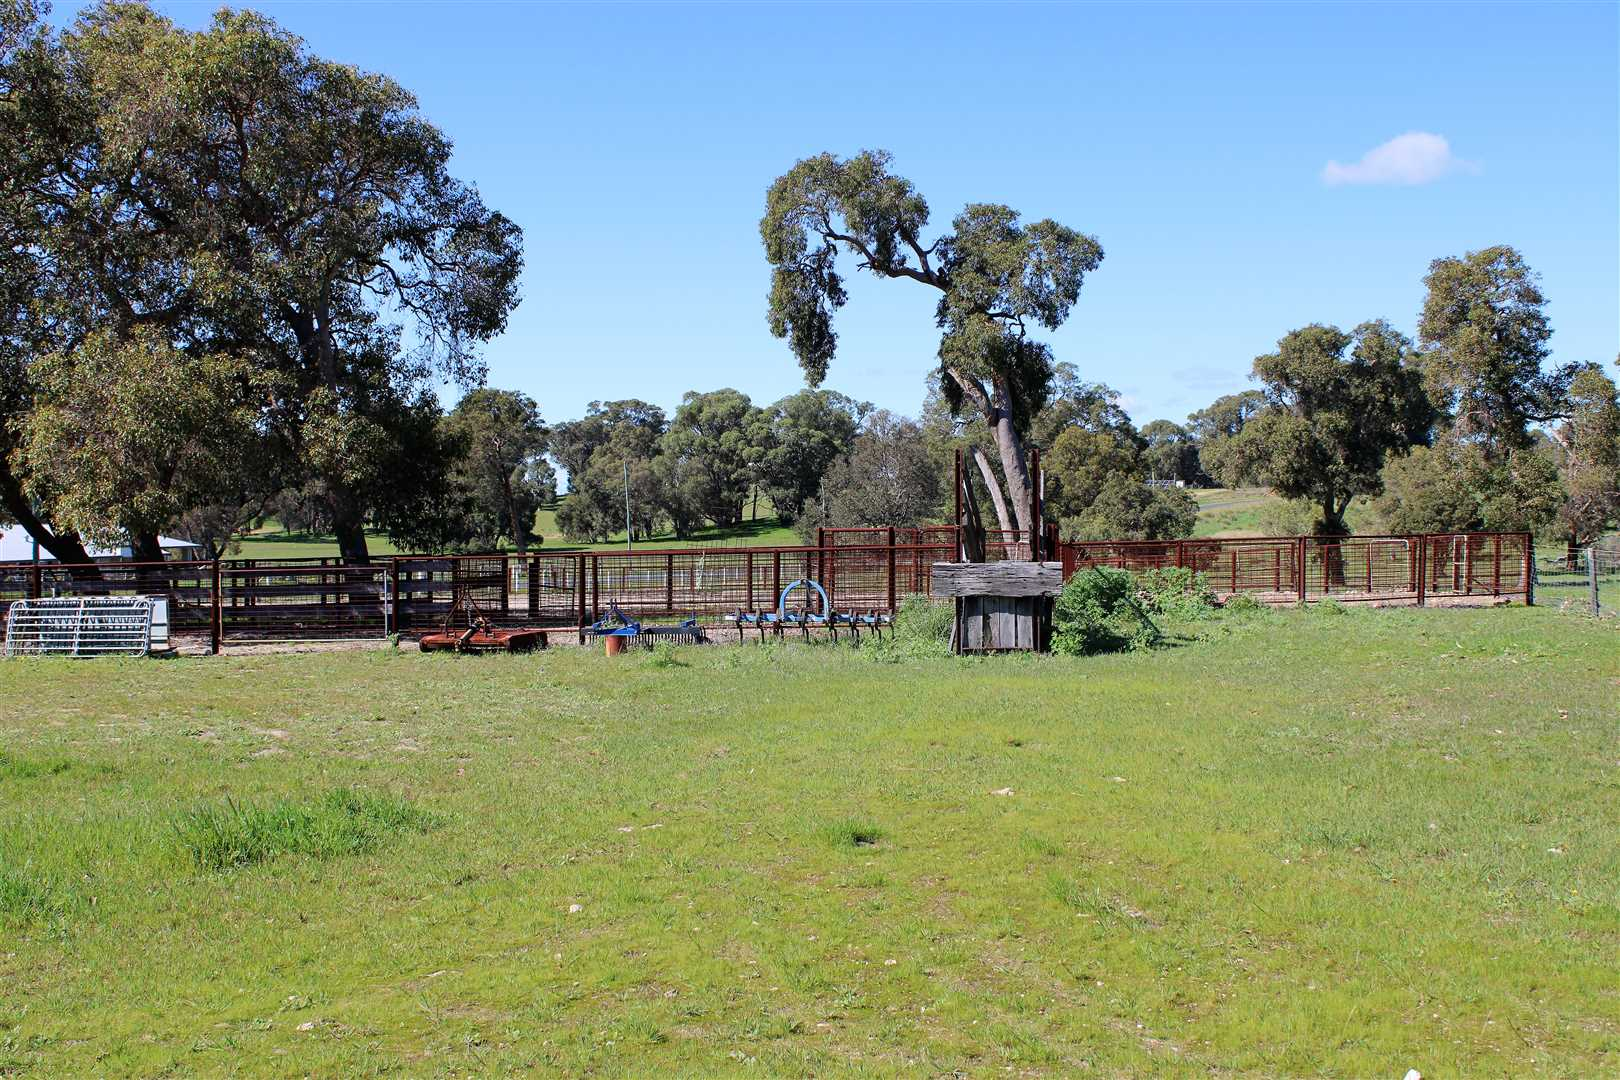 Cattle/Sheep yards